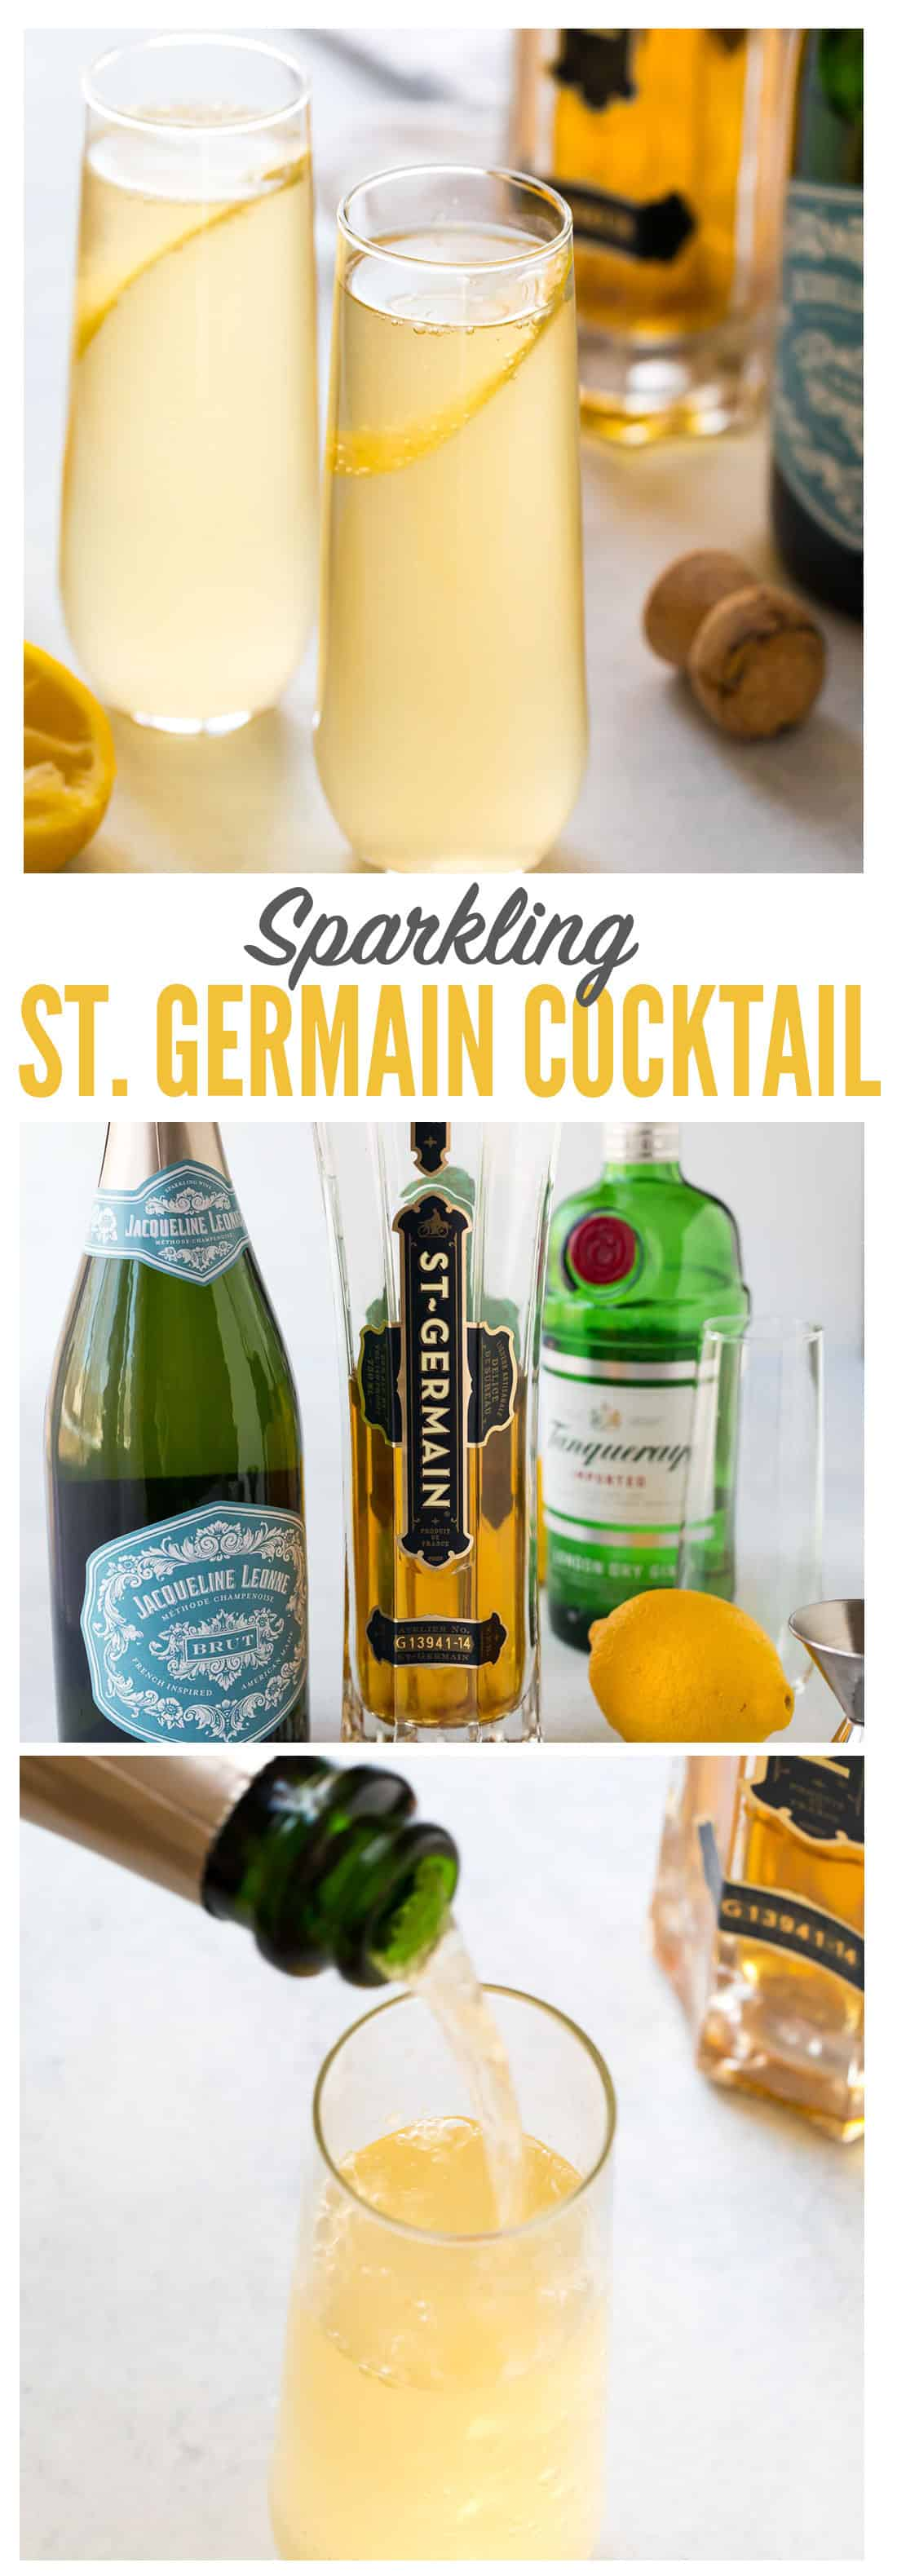 A bright and refreshing St. Germain cocktail made with St. Germain, gin or vodka, fresh lemon, and topped with Prosecco or champagne. Easy and perfect for brunch, a special date night in, and parties! #stgermain #cocktail #champagne #gin #vodka